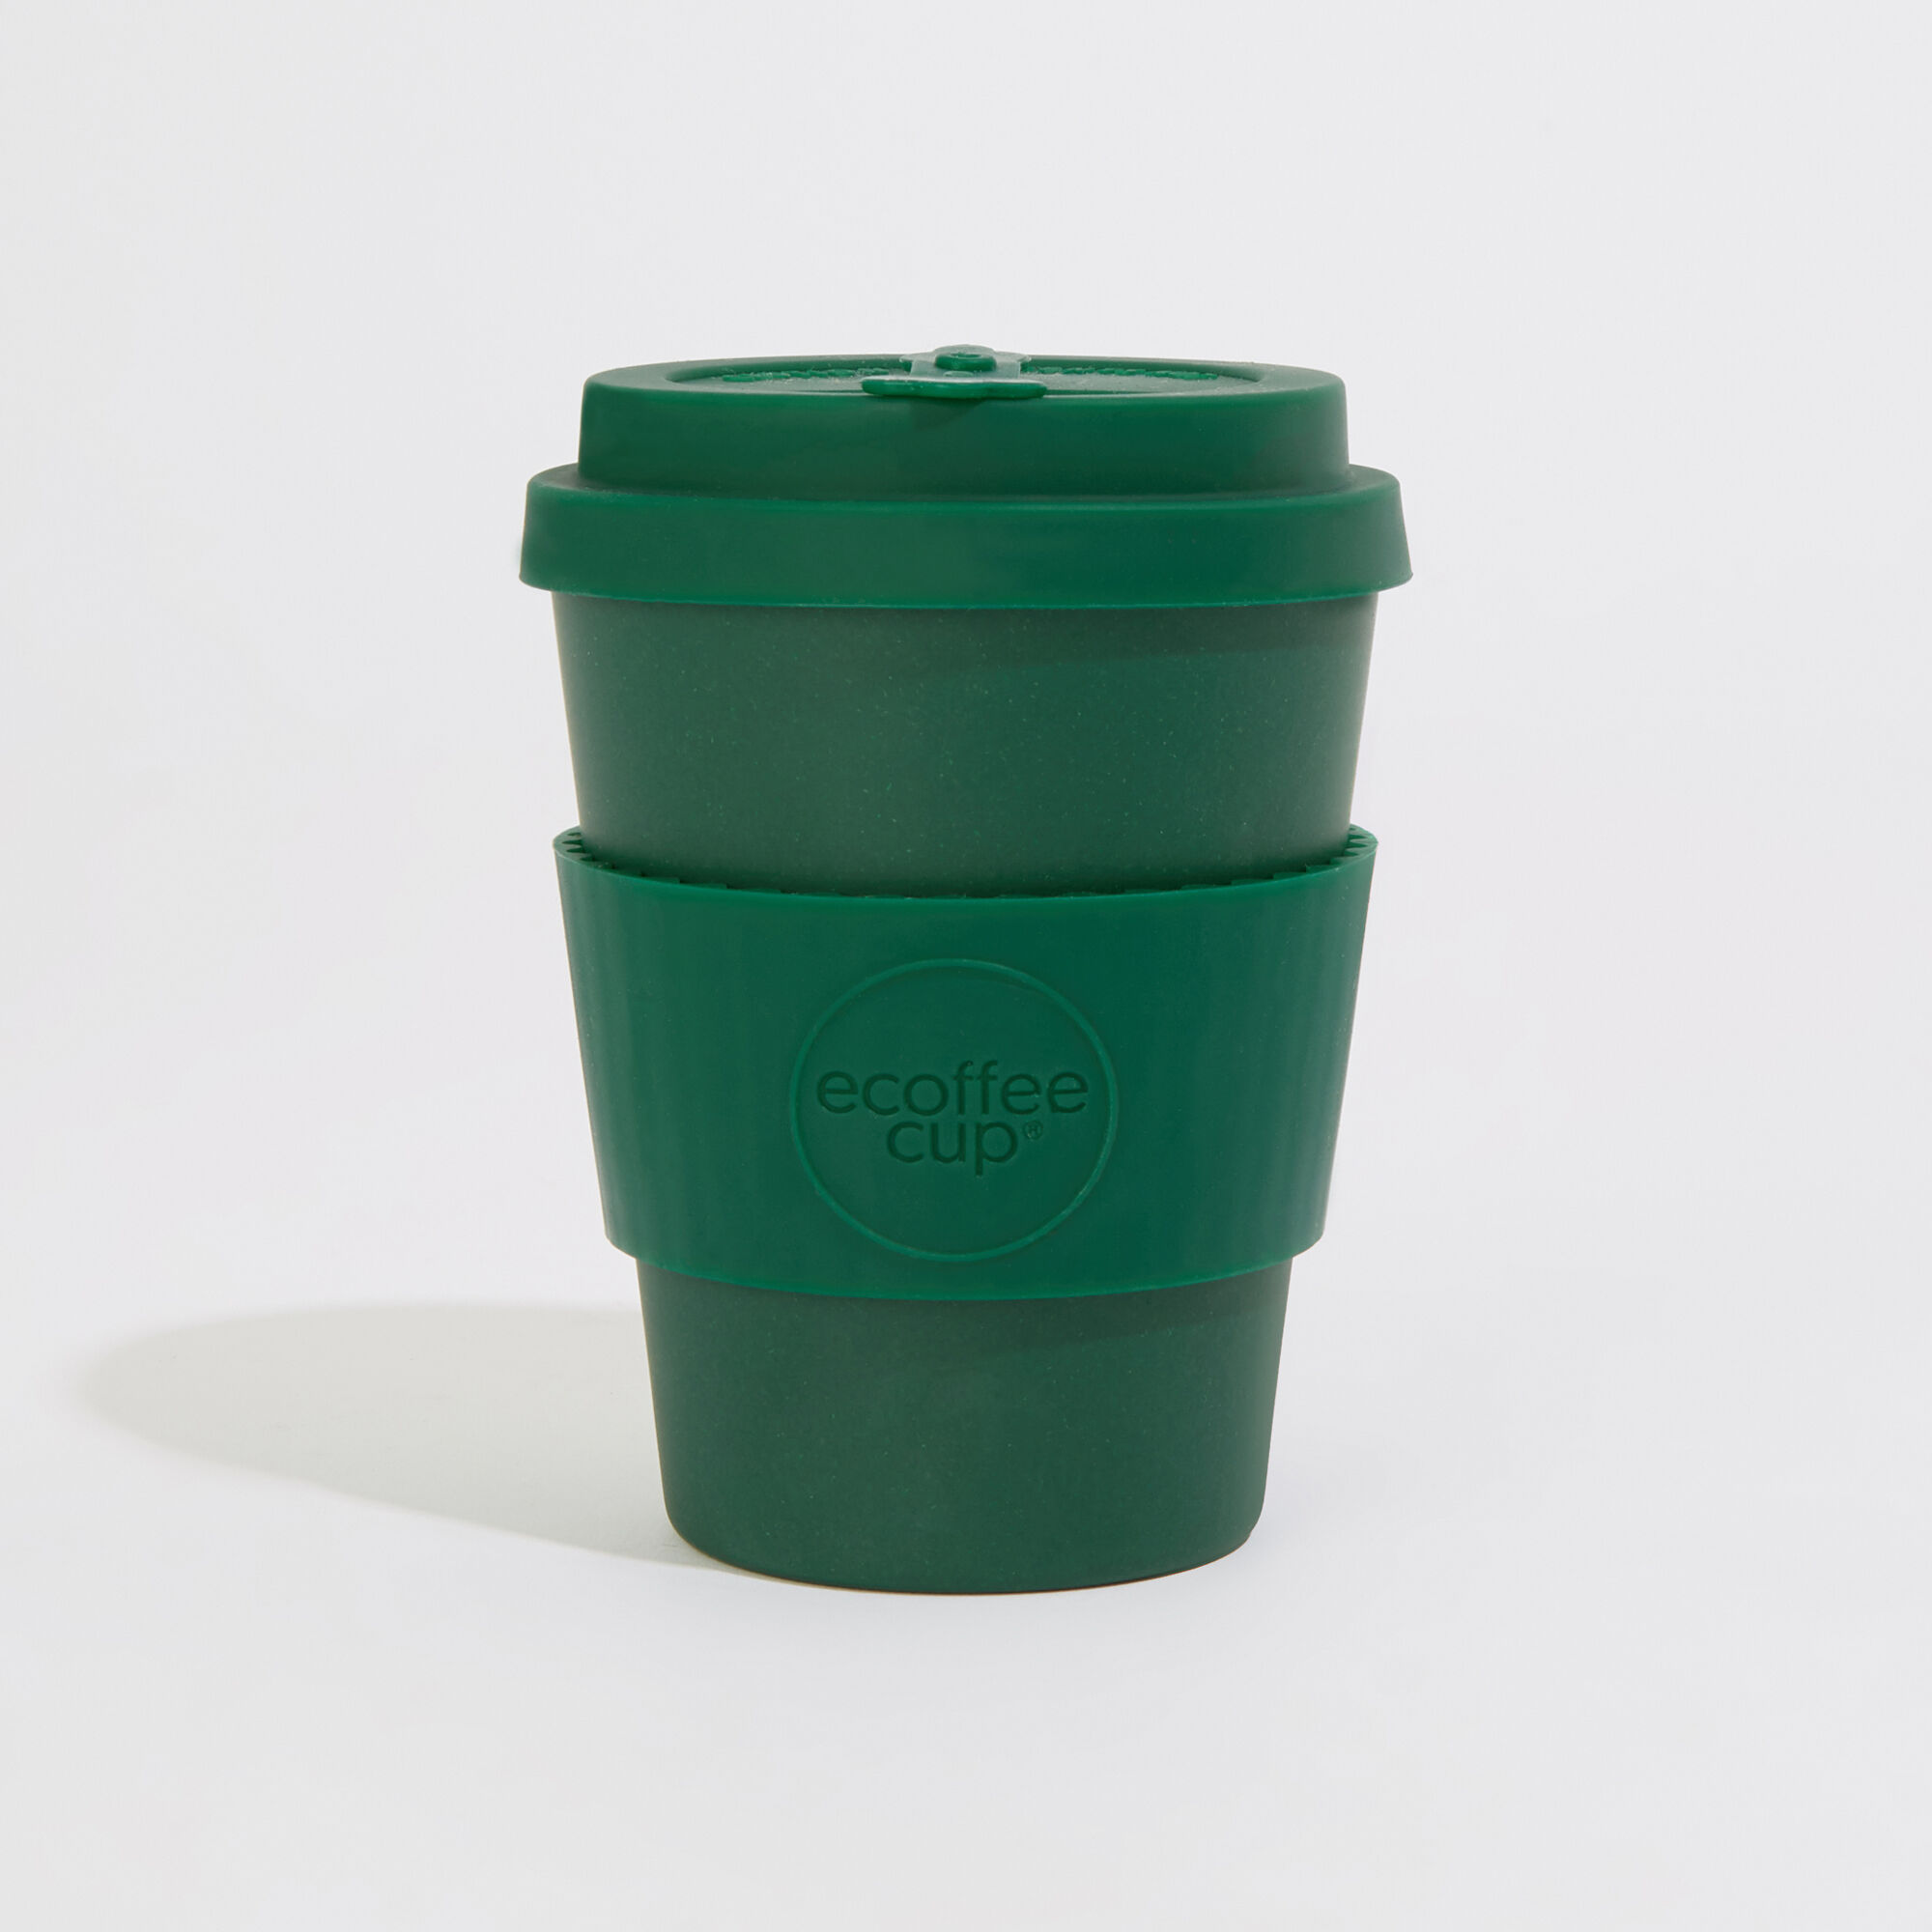 Warehouse, Ecoffee Reusable Coffee Cup Dark Green 1